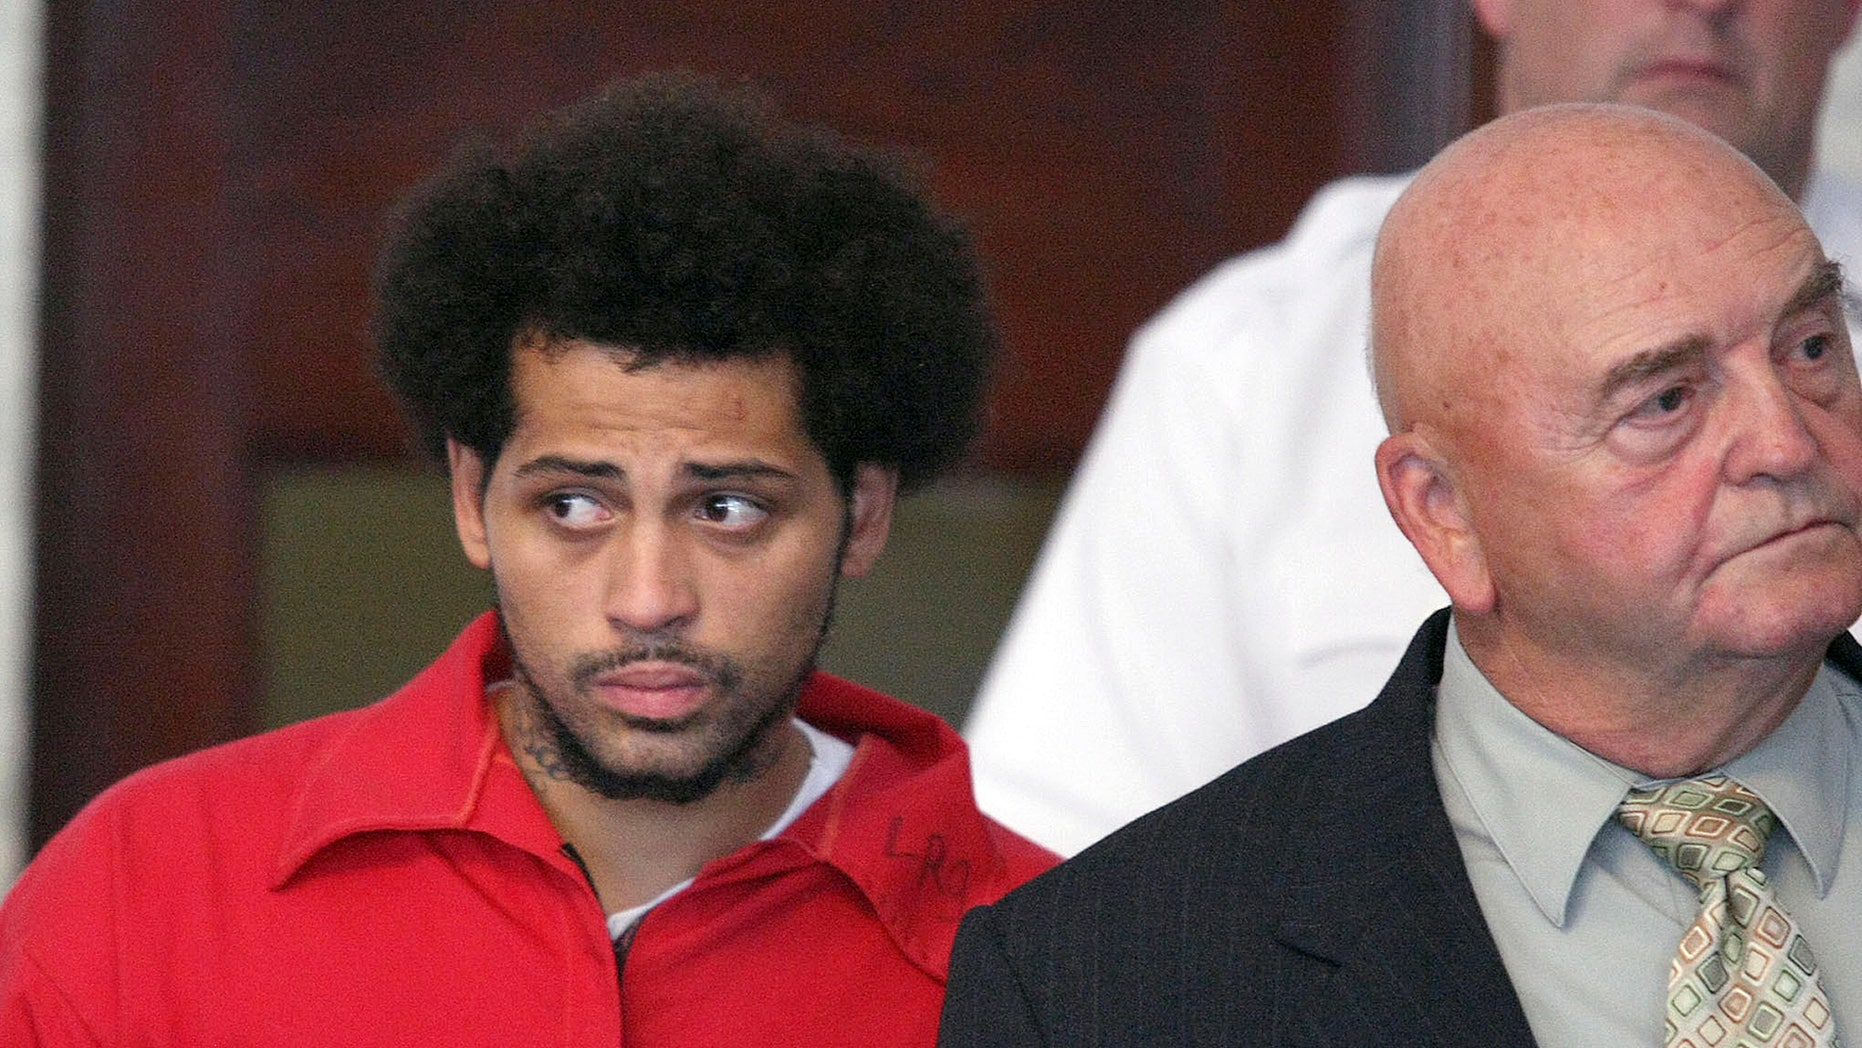 FILE - In this Friday, June 28, 2013 file photo, Carlos Ortiz, an associate of ex-New England Patriot Aaron Hernandez, left, enters the Attleboro District Court with attorney John Connors, right, for his arraignment on weapons charges, in Attleboro, Mass. Ortiz. who has been charged as an accessory to murder, is due in Fall River Superior Court Thursday afternoon, Jan. 9, 2014. (AP Photo/The Boston Globe, George Rizer, Pool, File)